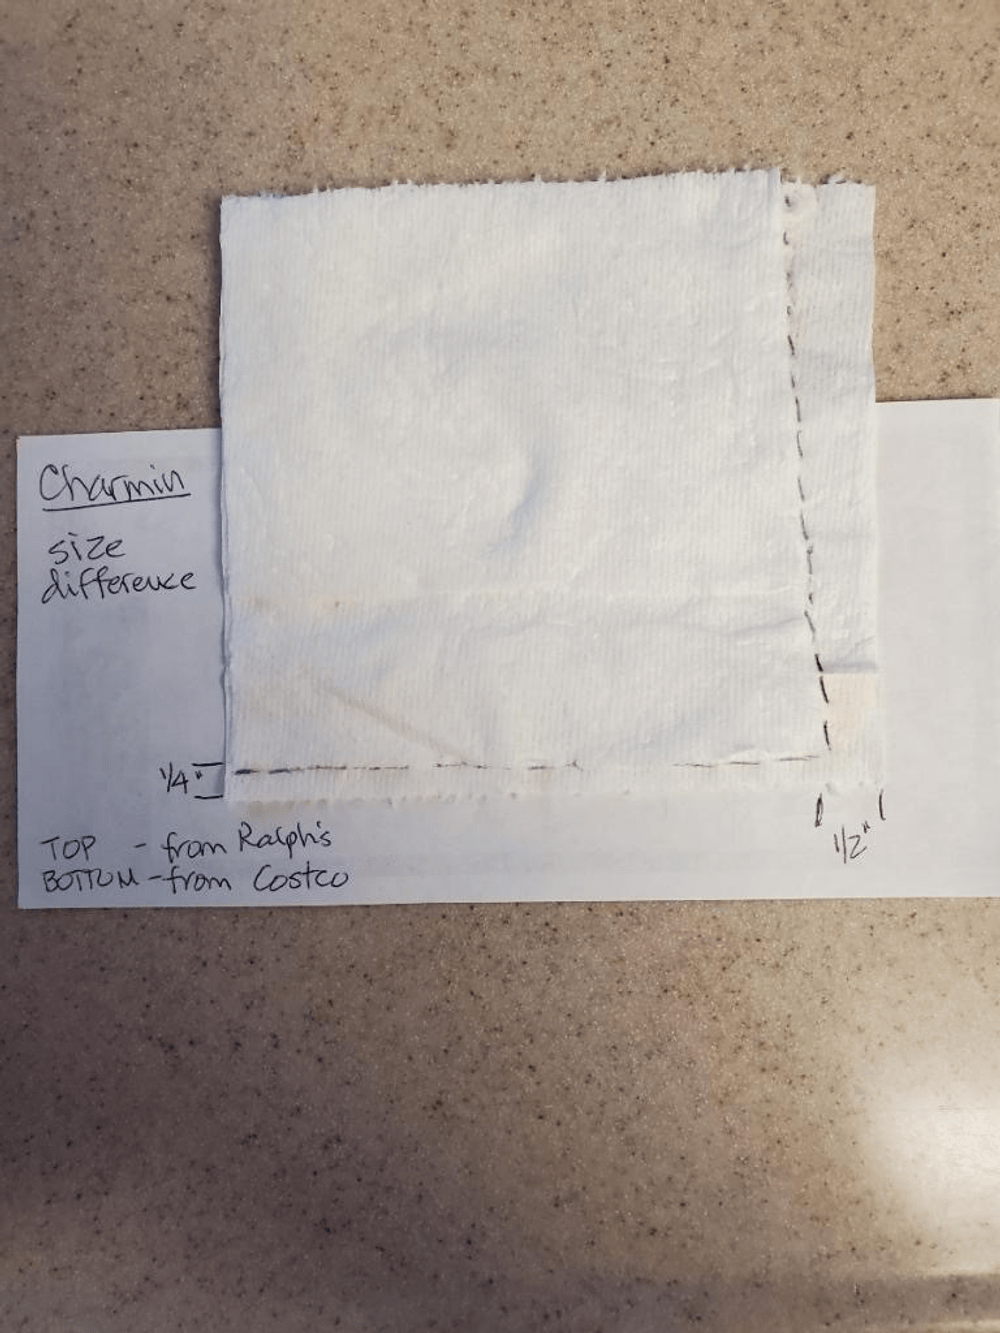 Melanie's size comparison of a square of Charmin Ultra Soft toilet paper from a newer package on top of a square from an older package.